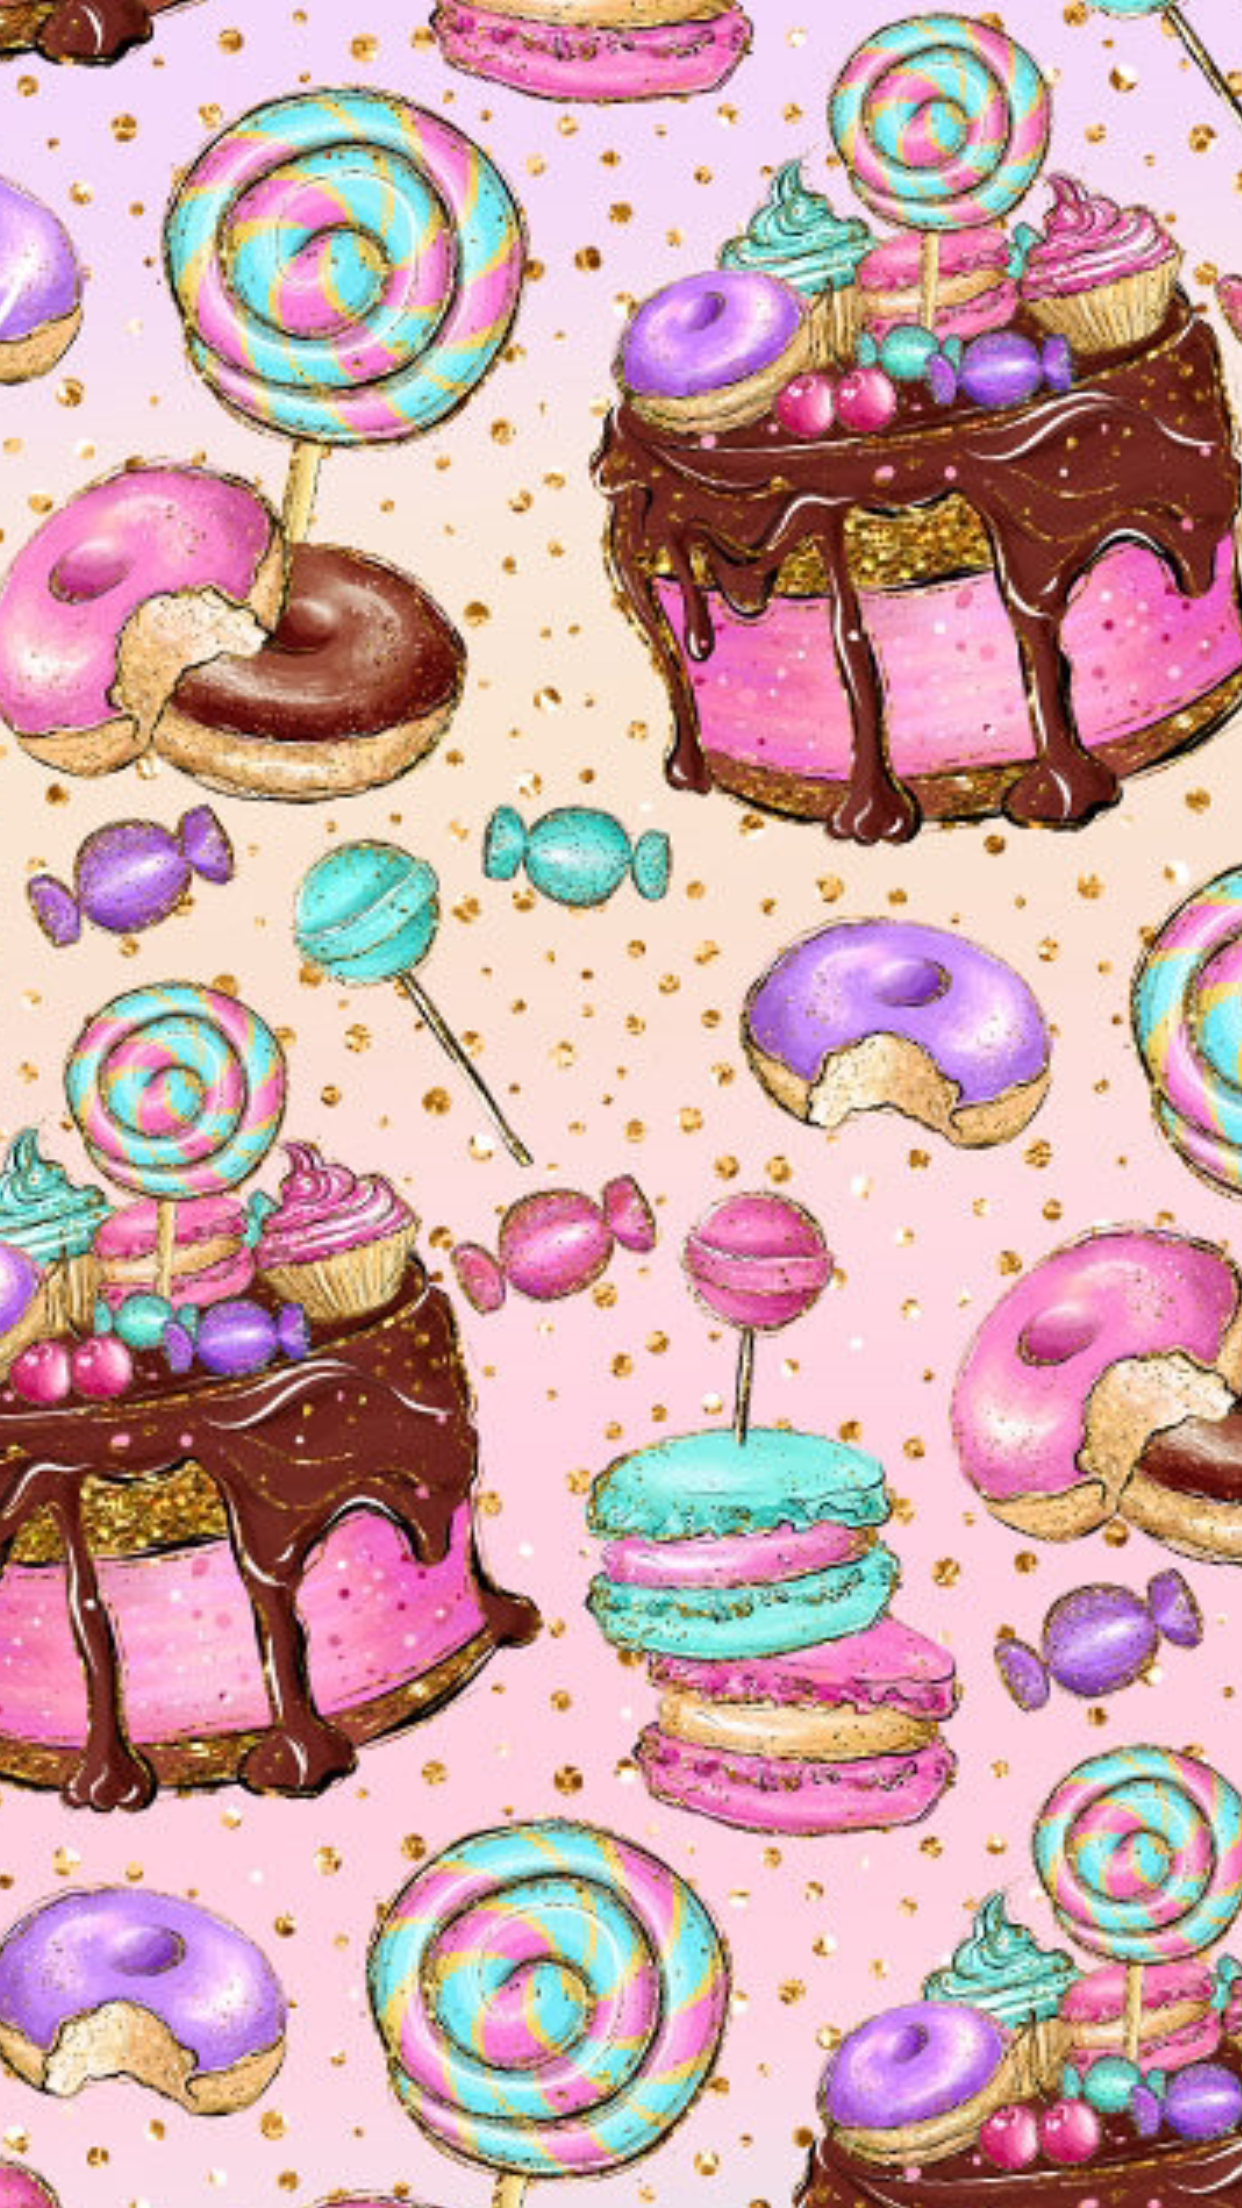 Pin By Imane Crazy On Wallpapers Cupcakes Wallpaper Iphone Wallpaper Wallpaper Iphone Cute